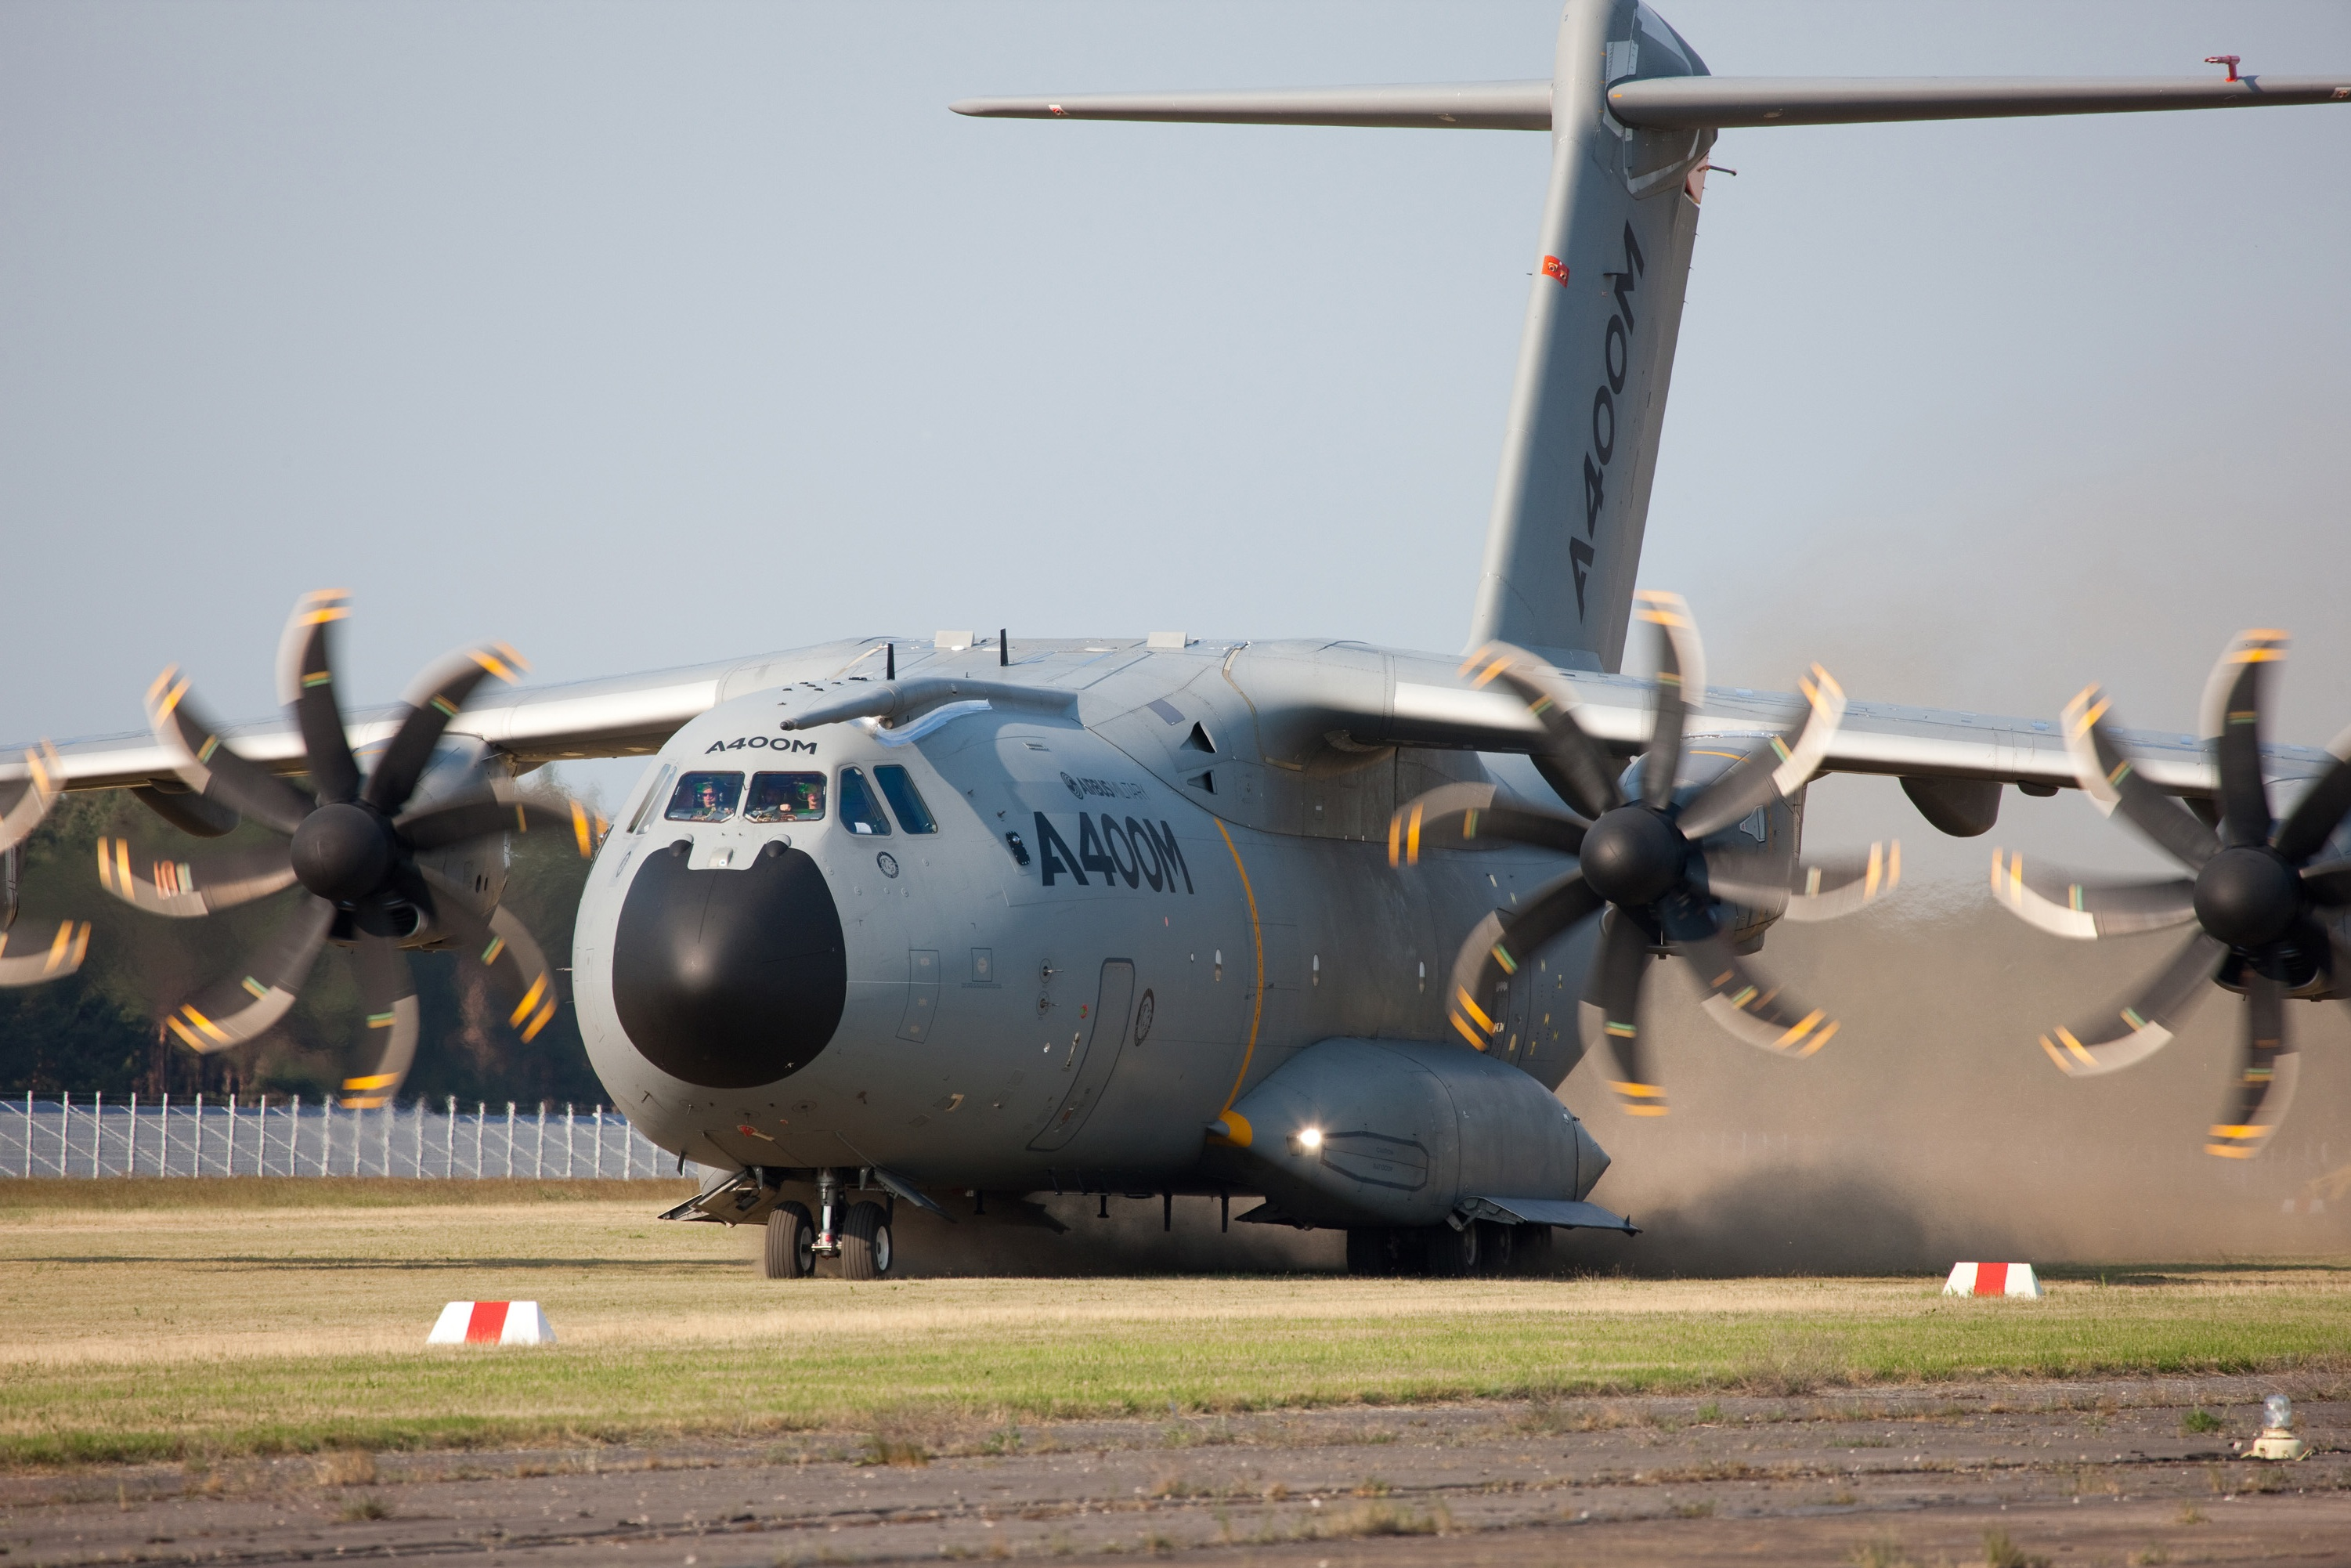 a400 composite report Hexcel 2015 annual reportpdf uploaded by christian balan related interests composite material airbus composite applications are now reaching an important acceptance point with our customers a400m military transport airbus group.